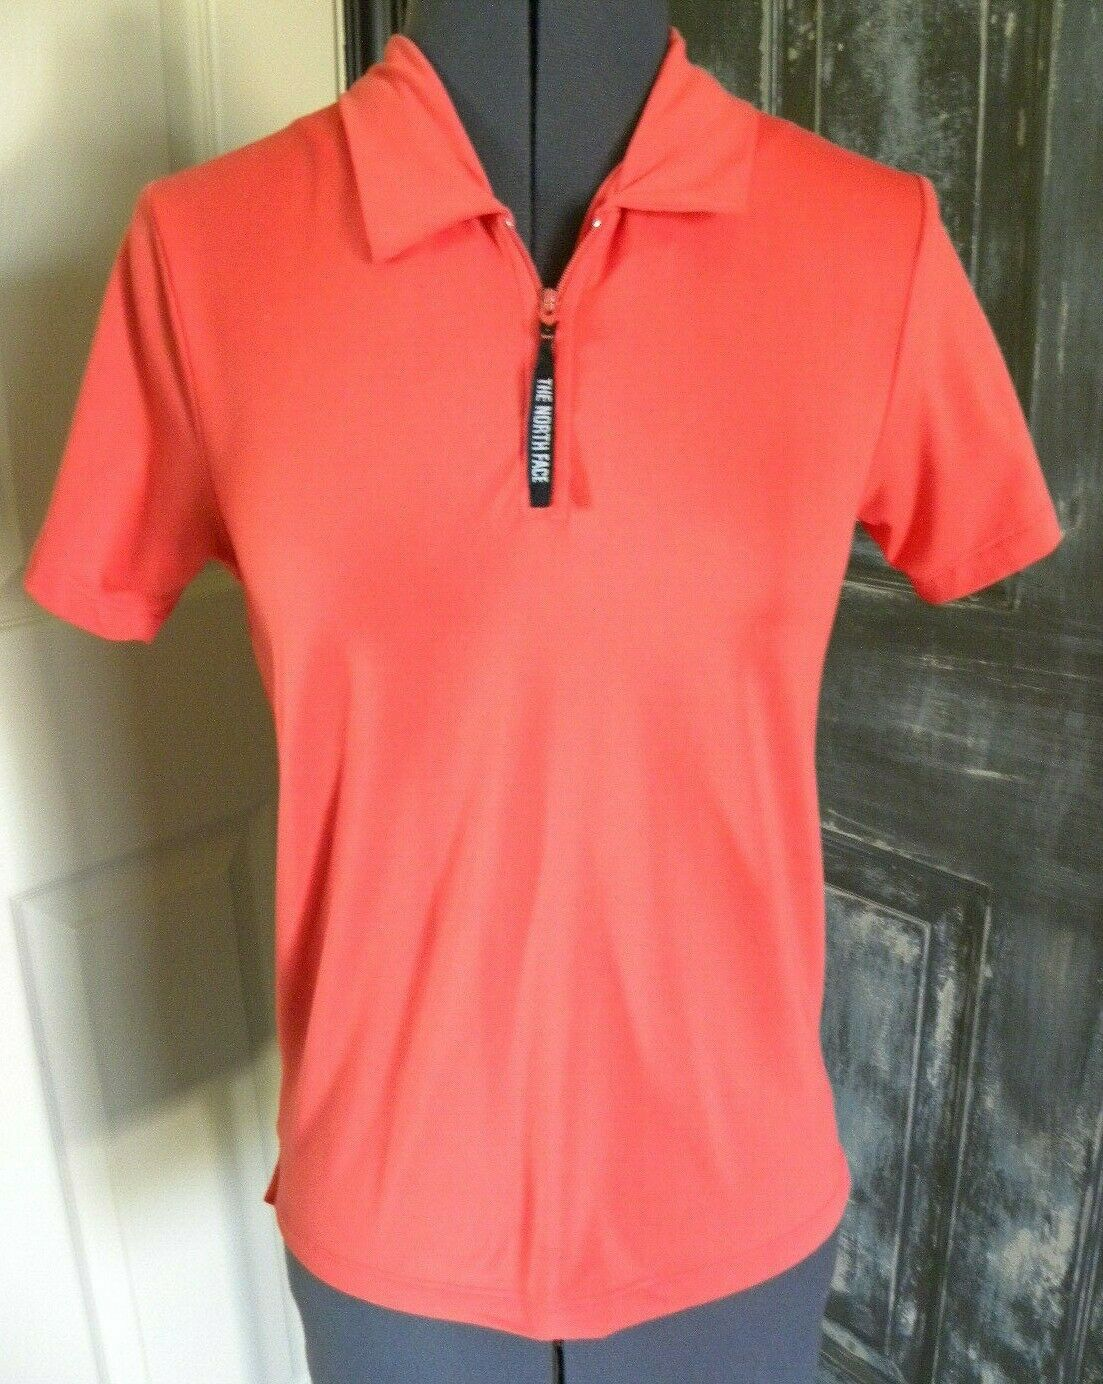 The North Face Women's Orange Short Sleeve 1/4 Zip Polo Shirt Size S